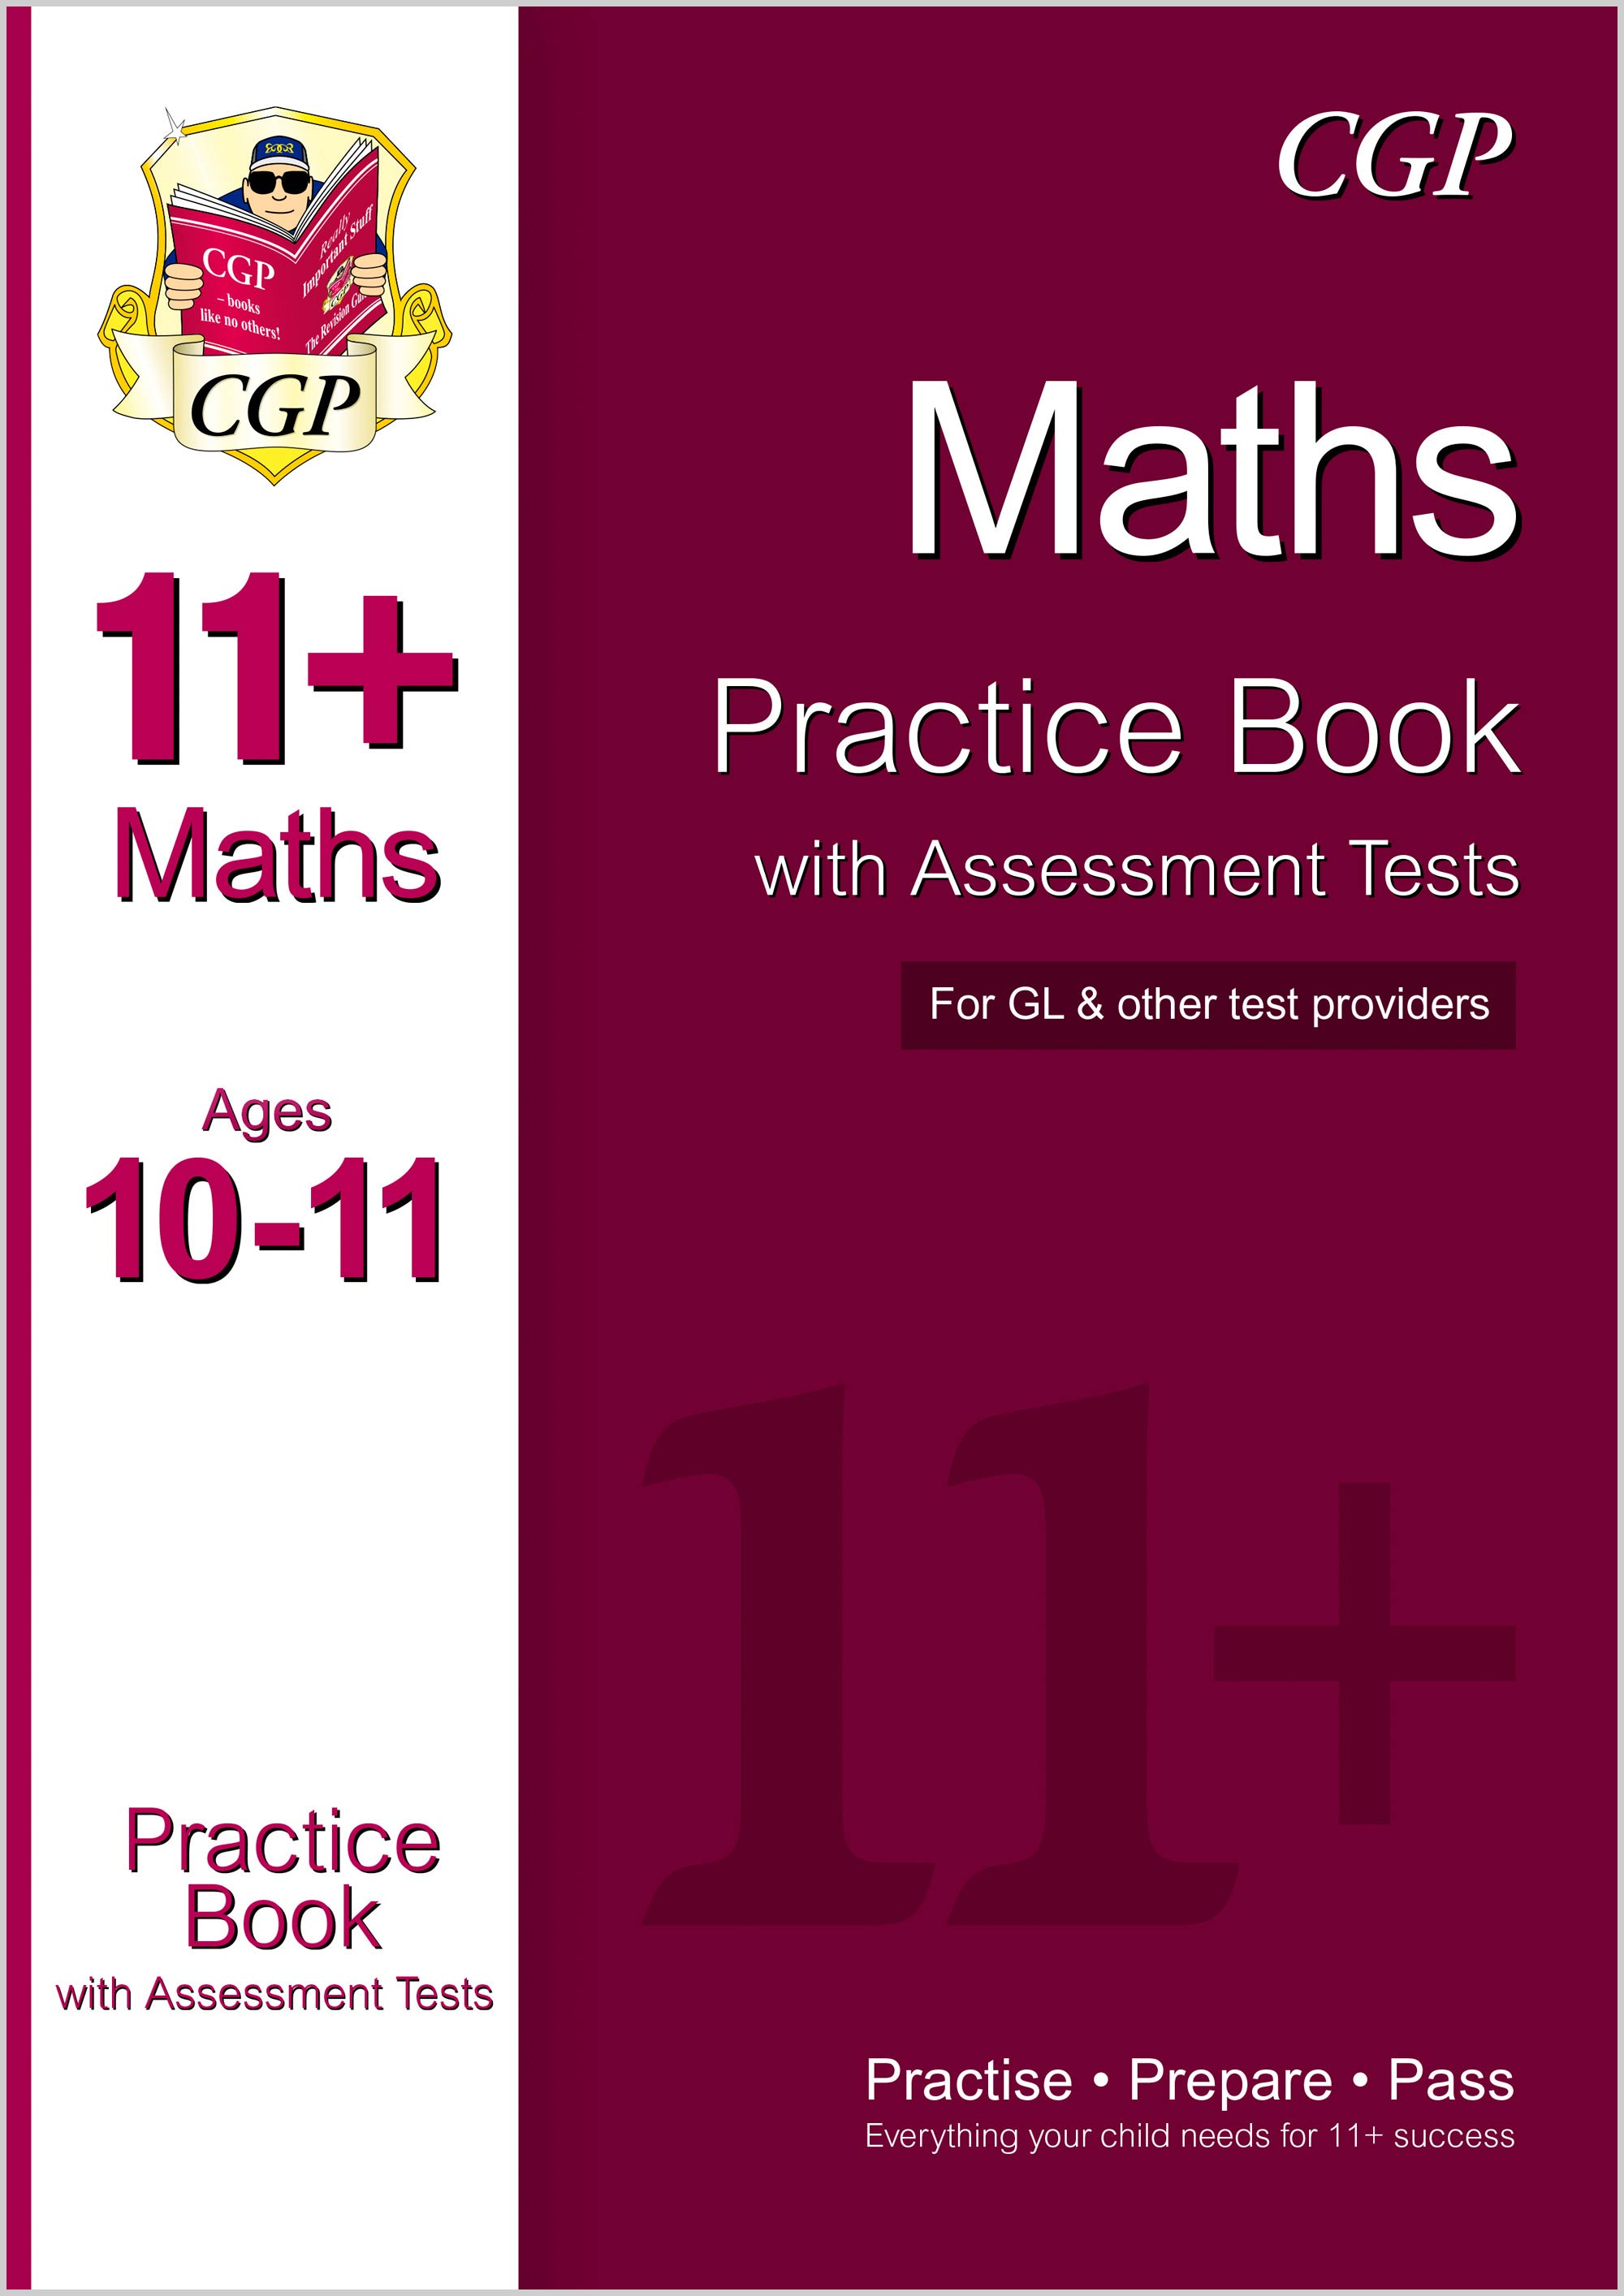 M6QE1DK - 11+ Maths Practice Book with Assessment Tests Ages 10-11 (for GL & Other Test Providers)